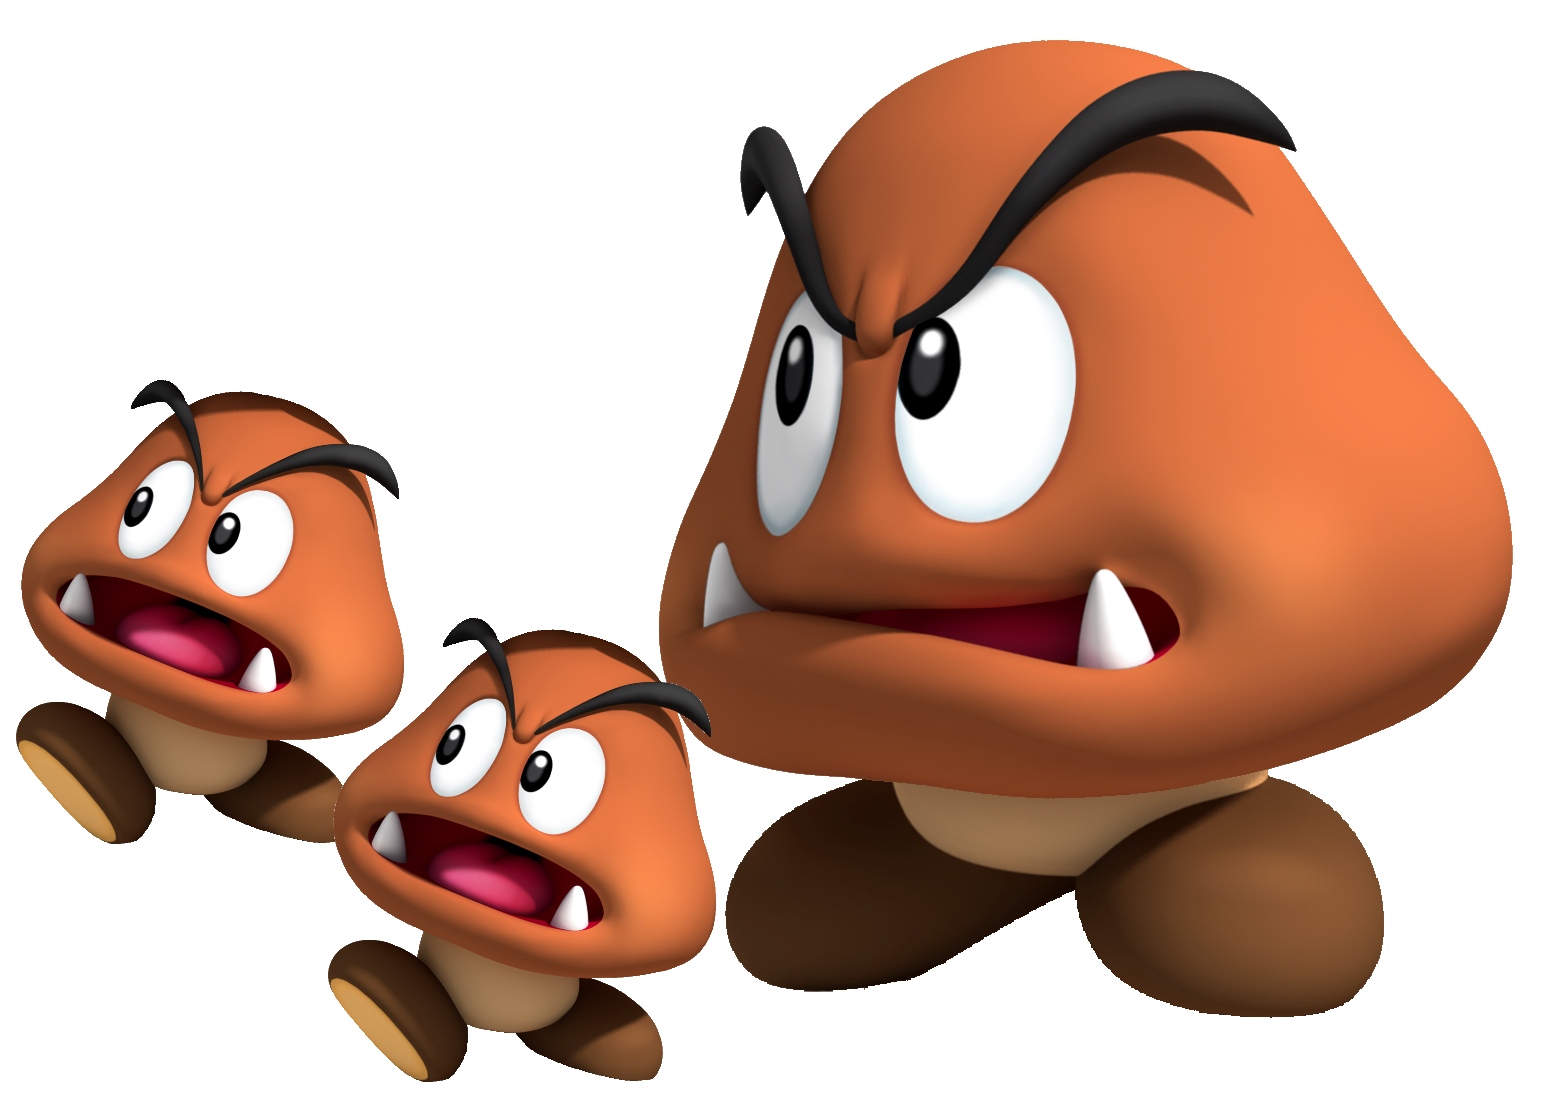 grand_goomba_and_goombas_sm3dw